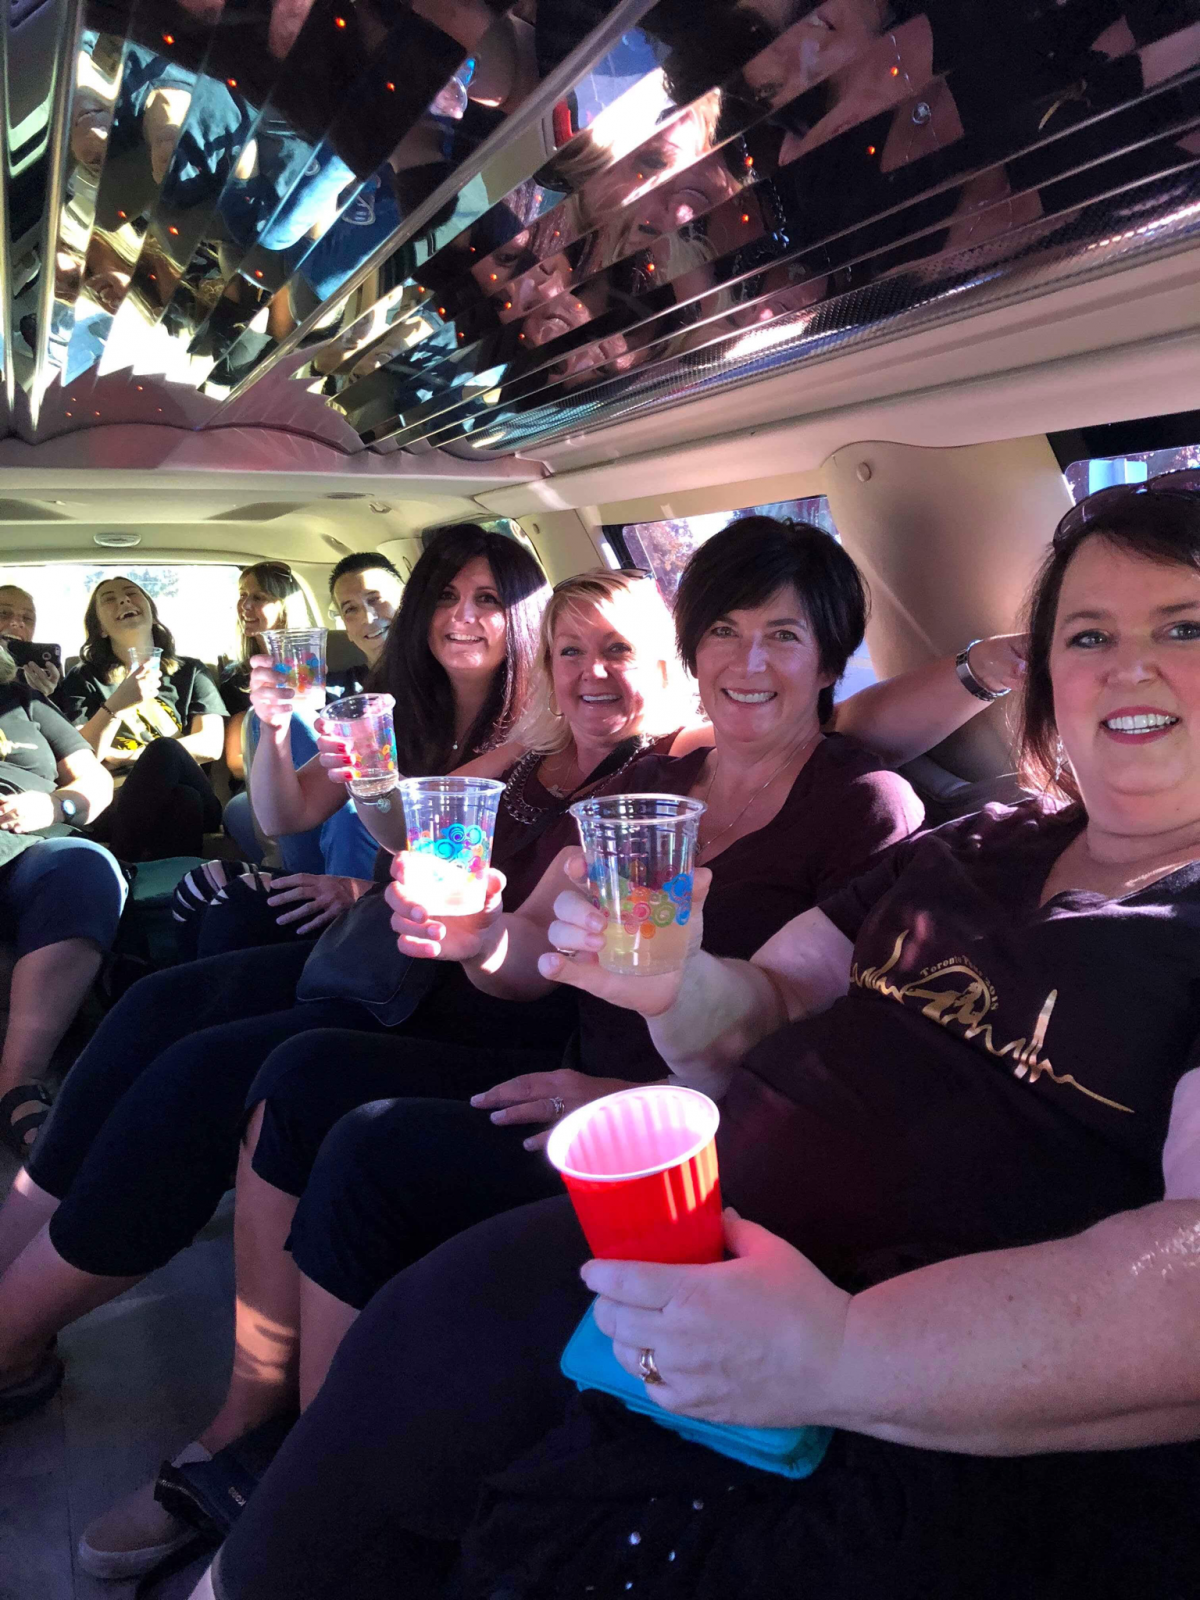 An image showing a number of women in the back of one of D&A's Limos